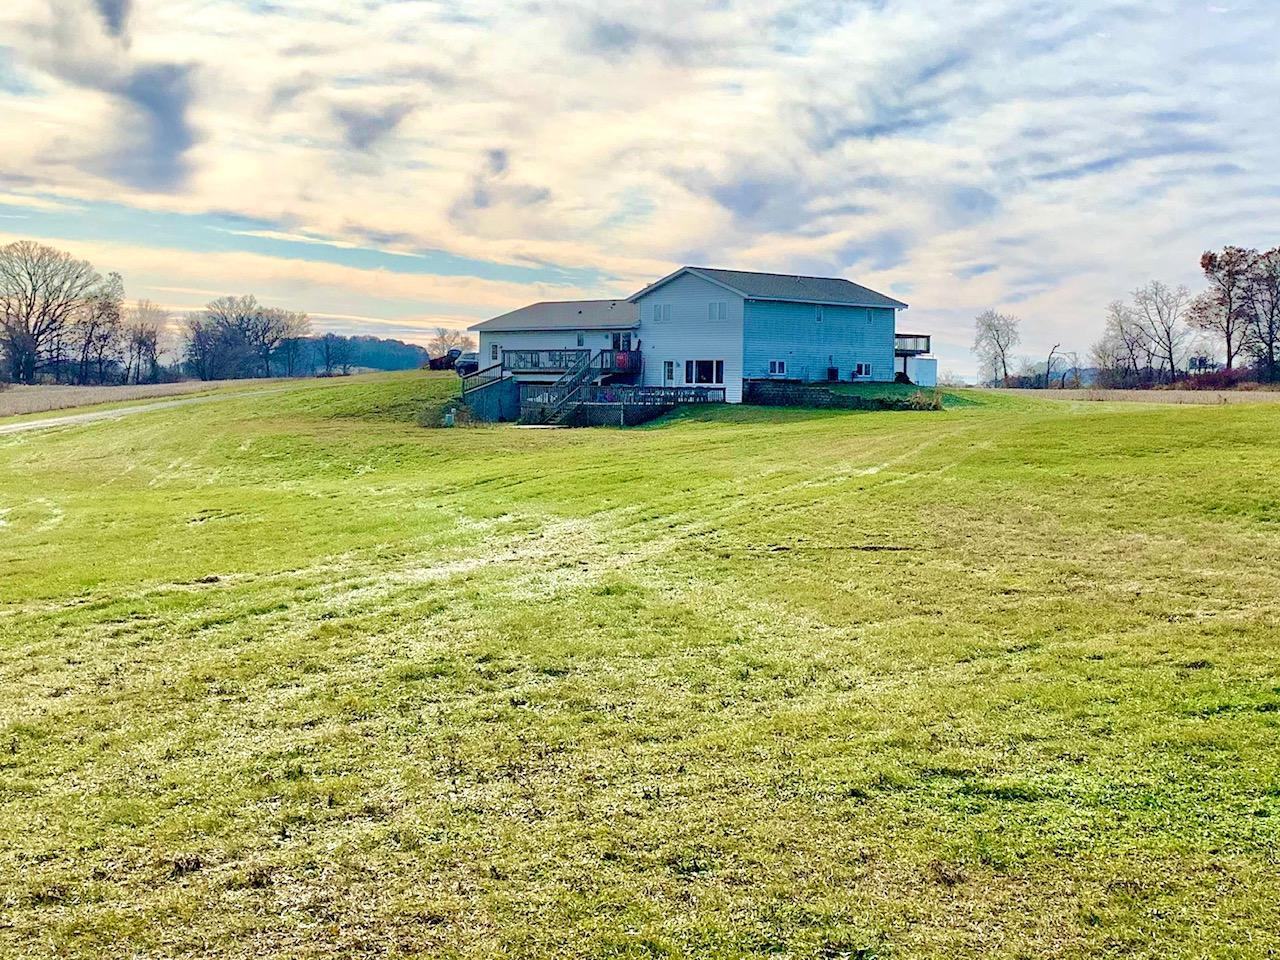 BEST OF ALL WORLDS!  ALMOST 20 ACRES,  BEAUTIFUL 3000+ SQ FT HOME, 60' X 120' DREAM SHOP (ZONED COMMERCIAL) , LEGAL AIRPORT WITH ALMOST 1800' GRASS RUNWAY!!!!HOME FEATURES HUGE CUSTOM KITCHEN-WOOD WORK-CABINETS + 12' X 25' DECK, FIRST FLOOR LAUNDRY,MASTER SUITE, NATURAL FIREPLACE, FANTASTIC 20 X 37 REC ROOM W/WET BAR AND FLOOR HEAT!  HOME HAS MULTIPLE HEAVY DUTY DECKS, AND A HEATED 3 CAR GARAGE! IF THIS IS NOT ENOUGH TO WOW YOU...THIS HOME HAS A 3 YR OLD ROOF,CABLE TV, HIGH SPEED INTERNET AND NATURAL GAS AVAILABLE!!! NEXT THE SHOP IS ACTUALLY ZONED COMMERCIAL!!! THERE IS TOO MUCH TO LIST BUT...480/400 AMP,DOORS: 18' X 10', 9' X 10' W/LOADING DOCK & 44' X 11 HANGER DOOR, RADIANT HEAT, FULL BATH, OFFICE, 1 YR OLD ROOF, 2 X 6 CONSTRUCTION, 4'' VACUUM LINE + APPROX 10 ACRES RENTED $700/Y